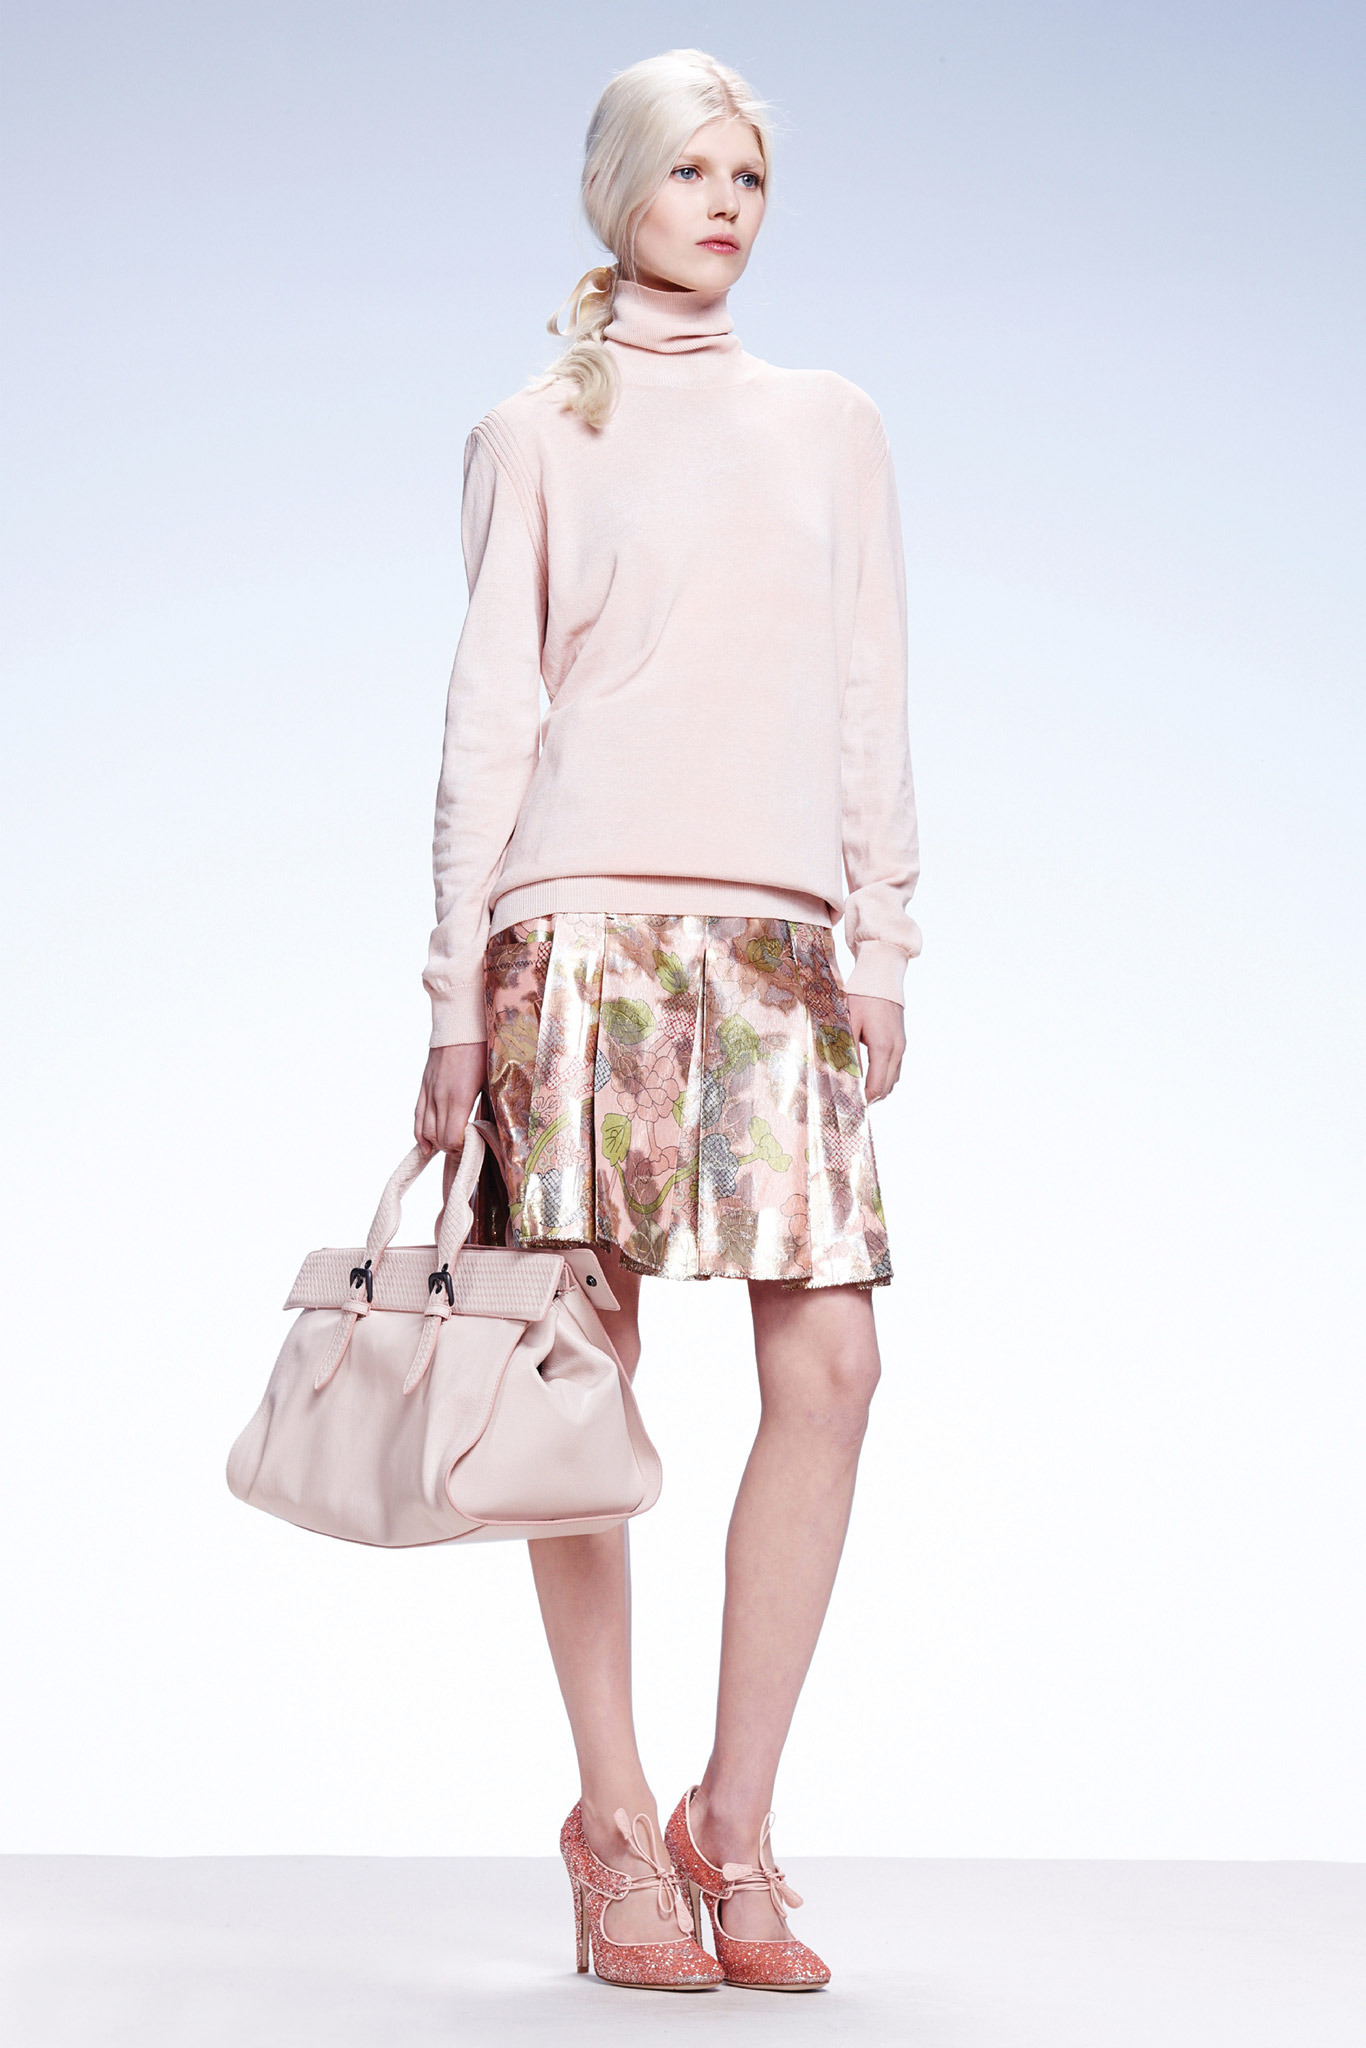 Ola Rudnicka | Bottega Veneta Resort 2015 (Photography: Courtesy Of Bottega Veneta via Style.com)